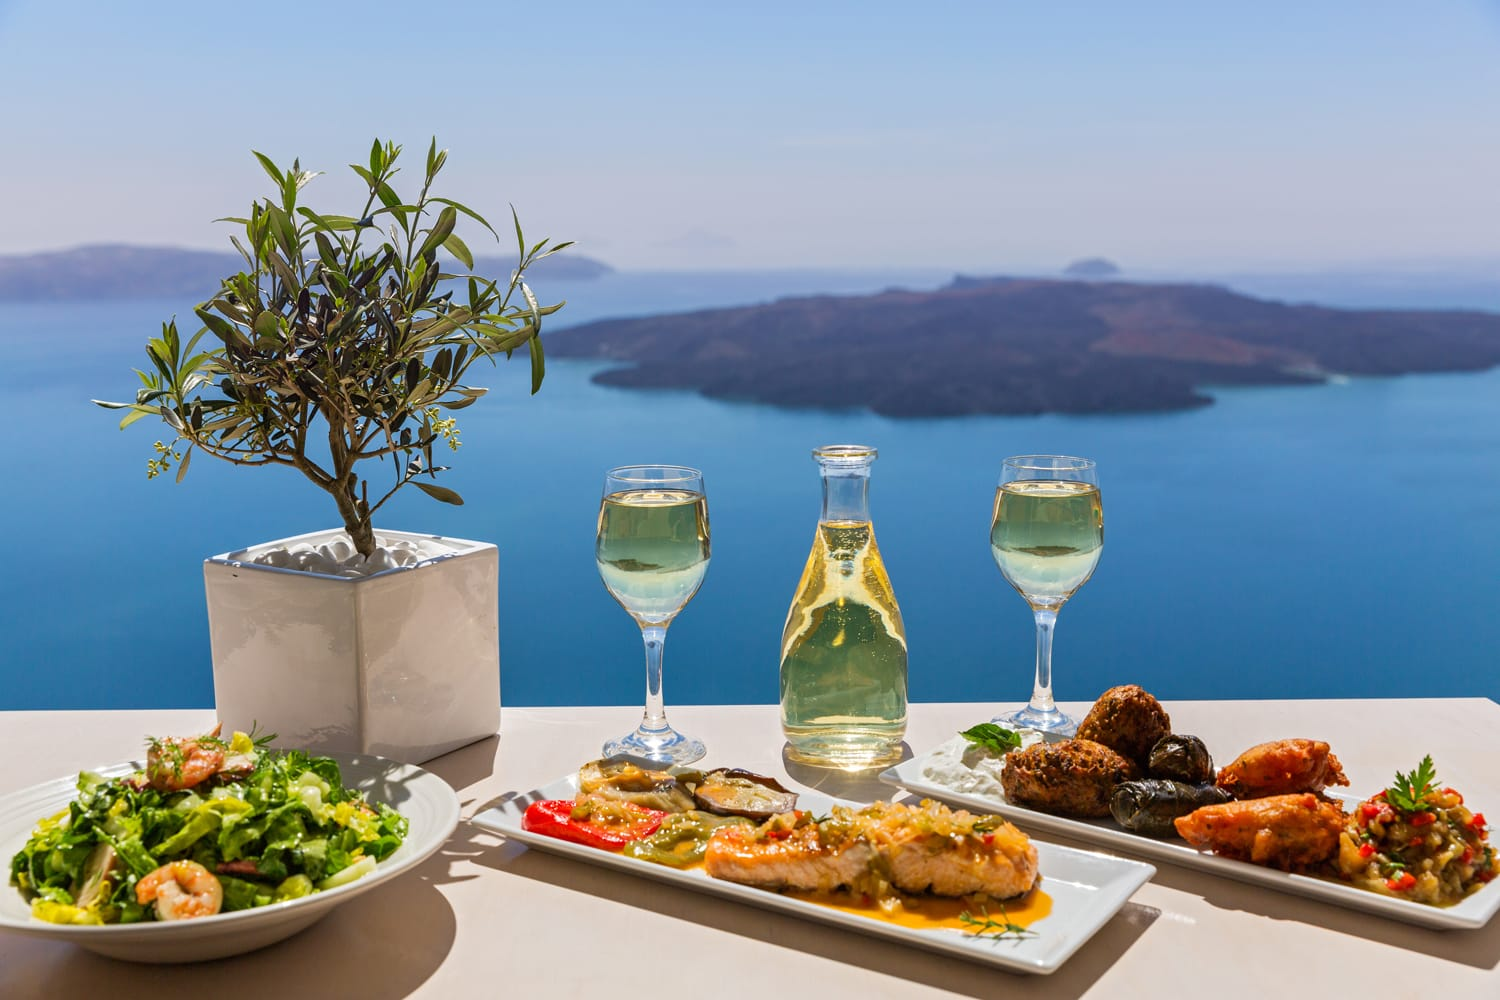 Lunch and wine by the sea, Greece, Santorini